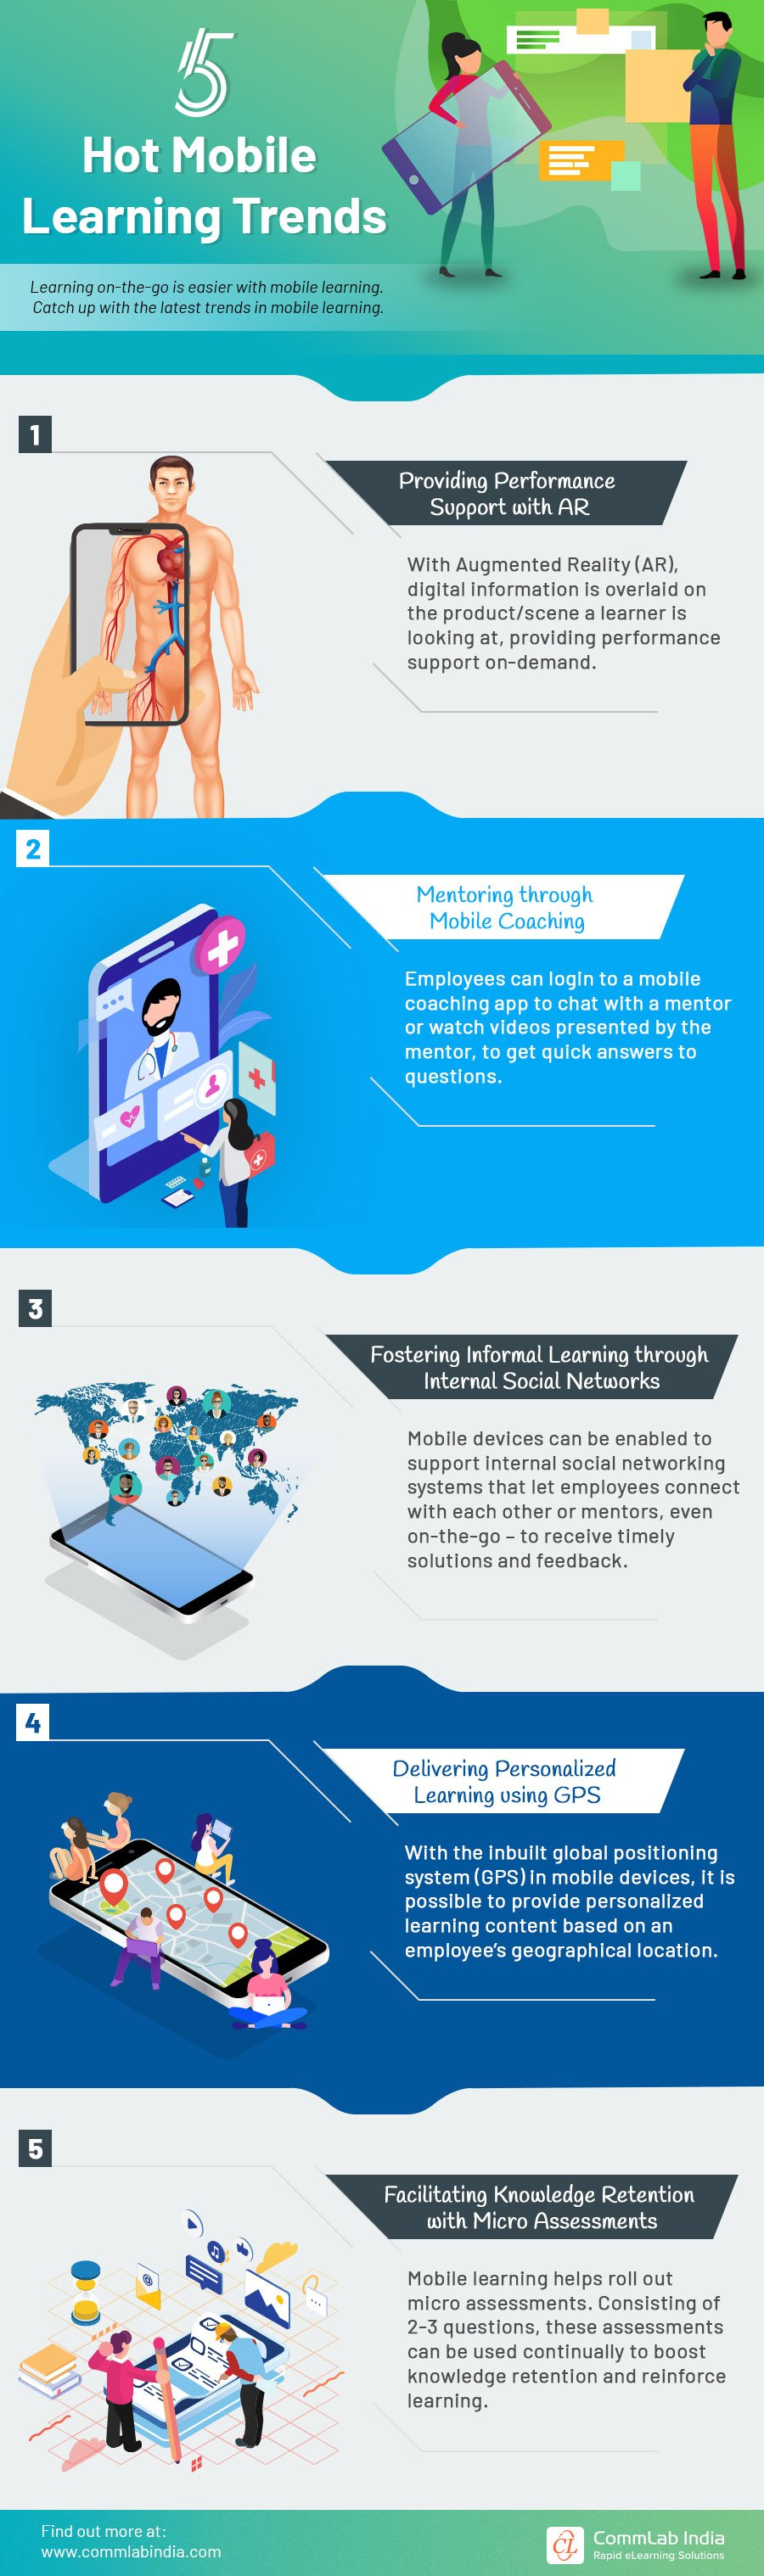 5 Hot Mobile Learning Trends [Infographic]